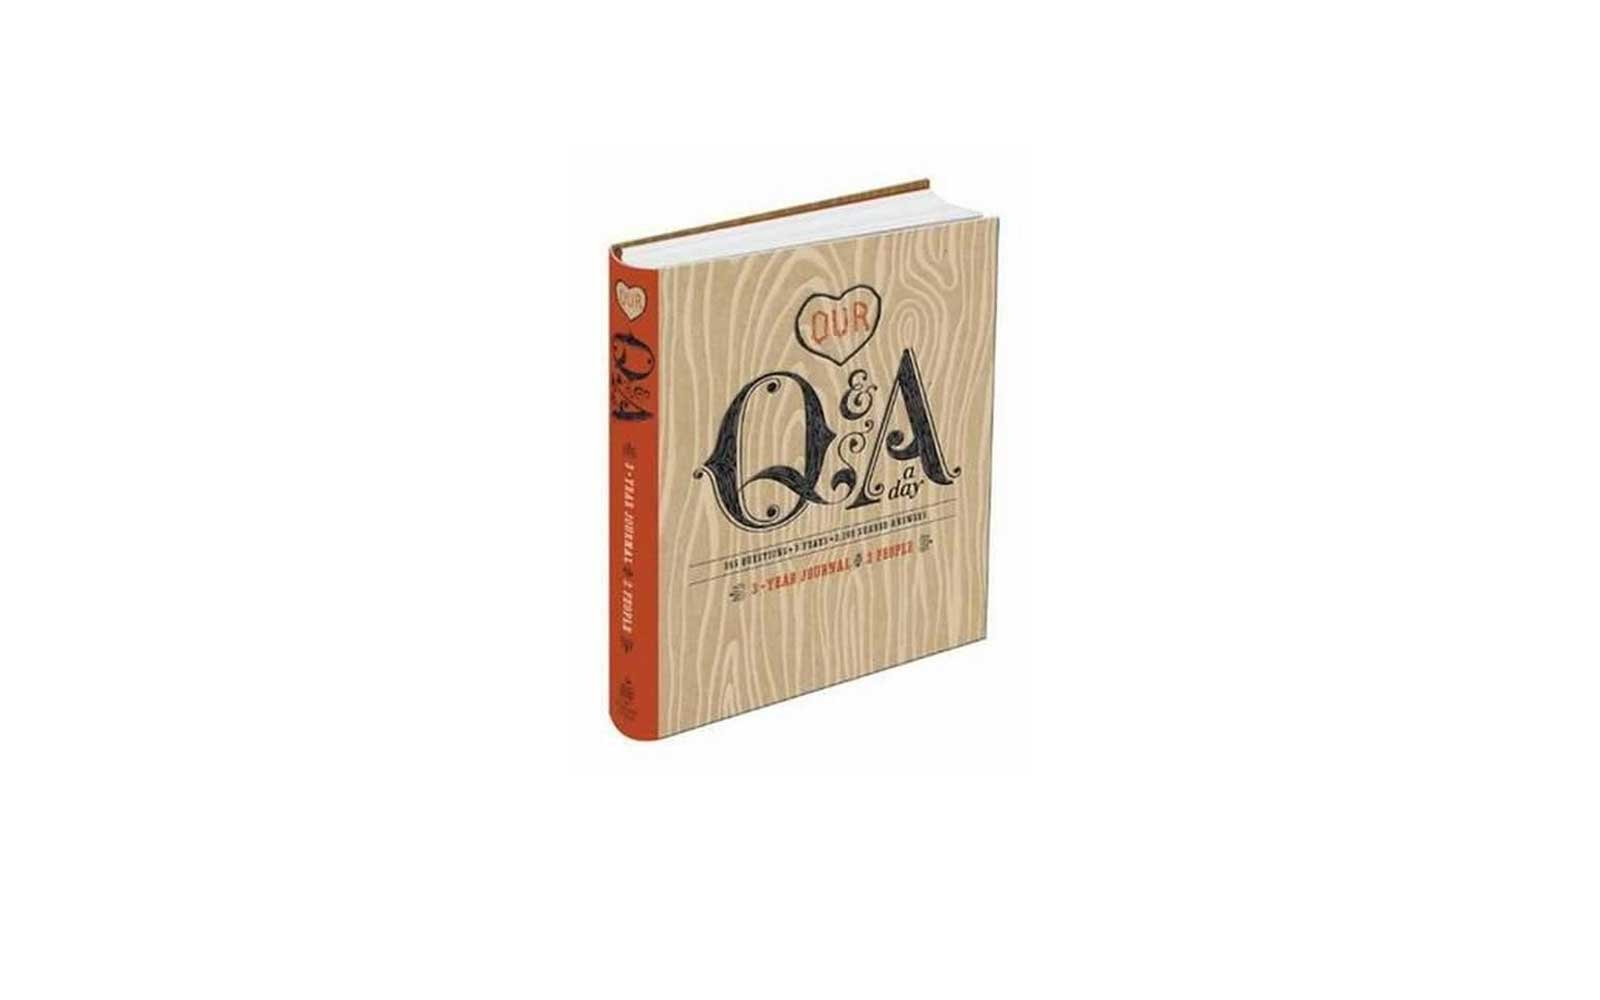 Q&A Journal for 2 People